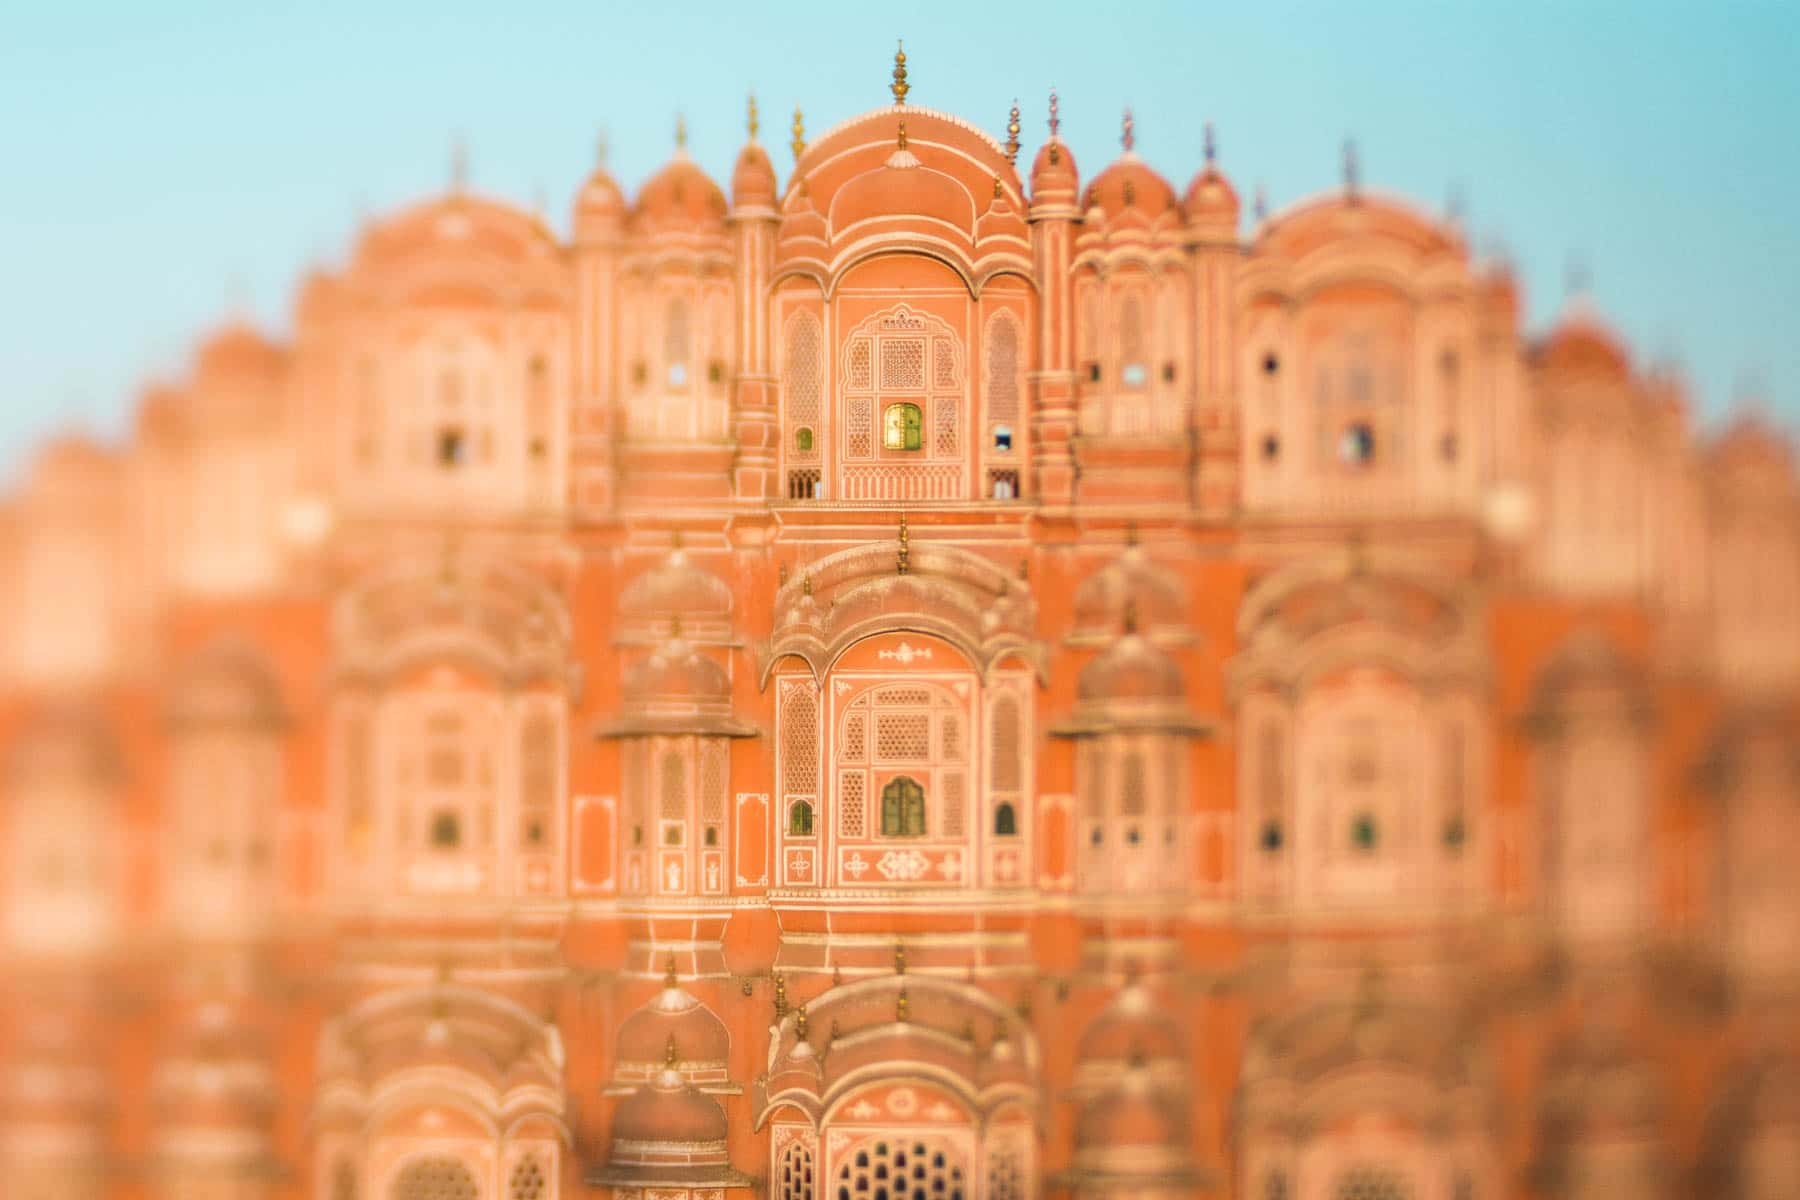 Lensbaby Edge 50 optic review - The Hawa Mahal in Jaipur, Rajasthan, India - Lost With Purpose